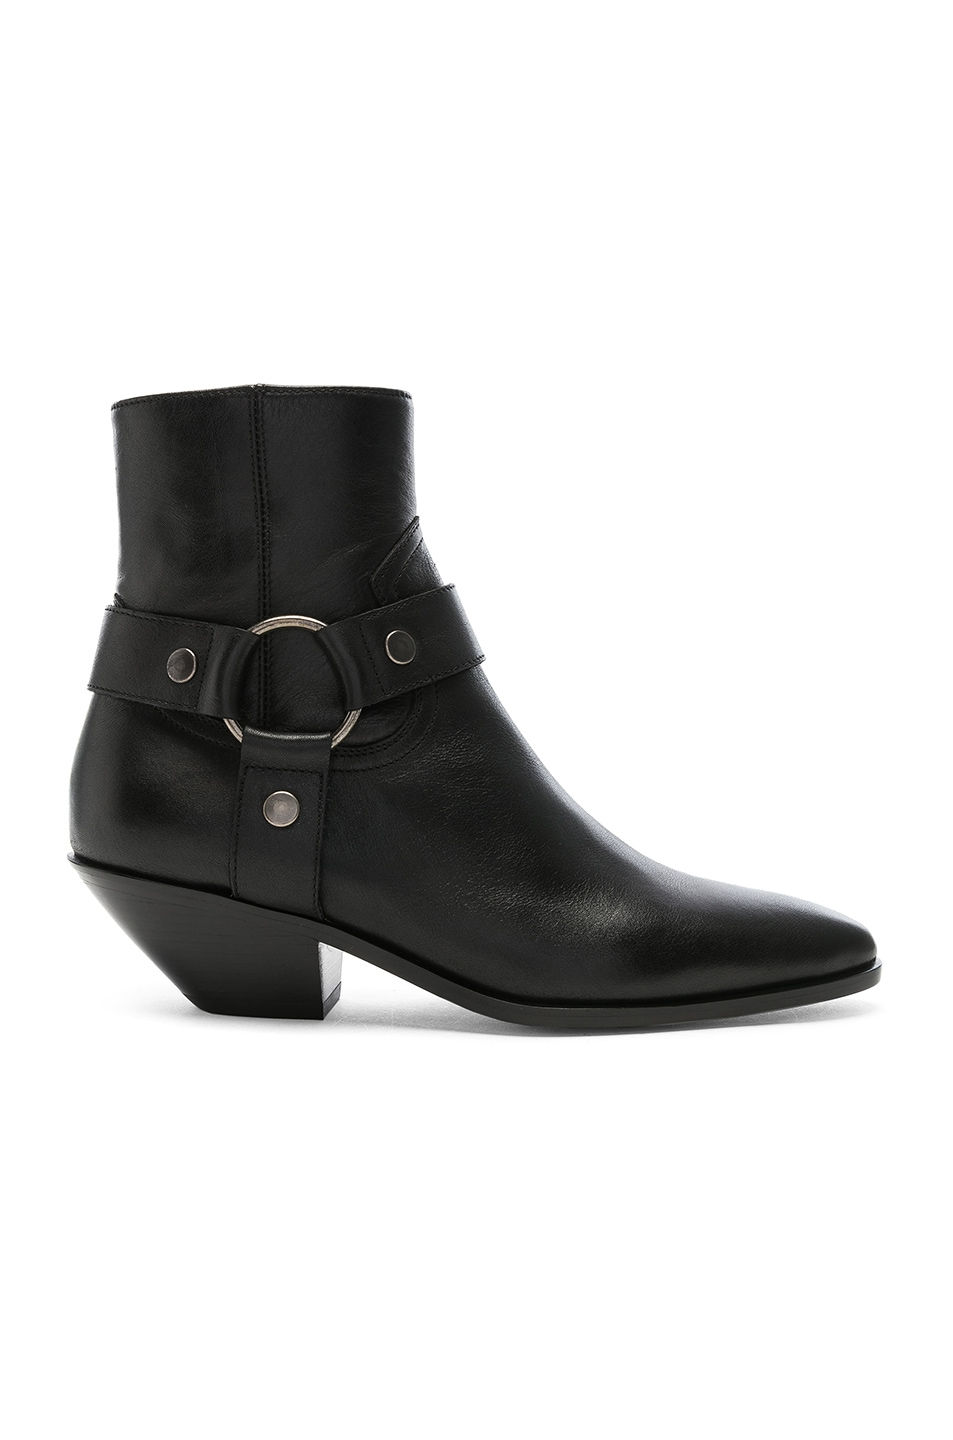 Saint Laurent Stiefeletten Cy500 Glattleder Metallisch Schwarz In Black